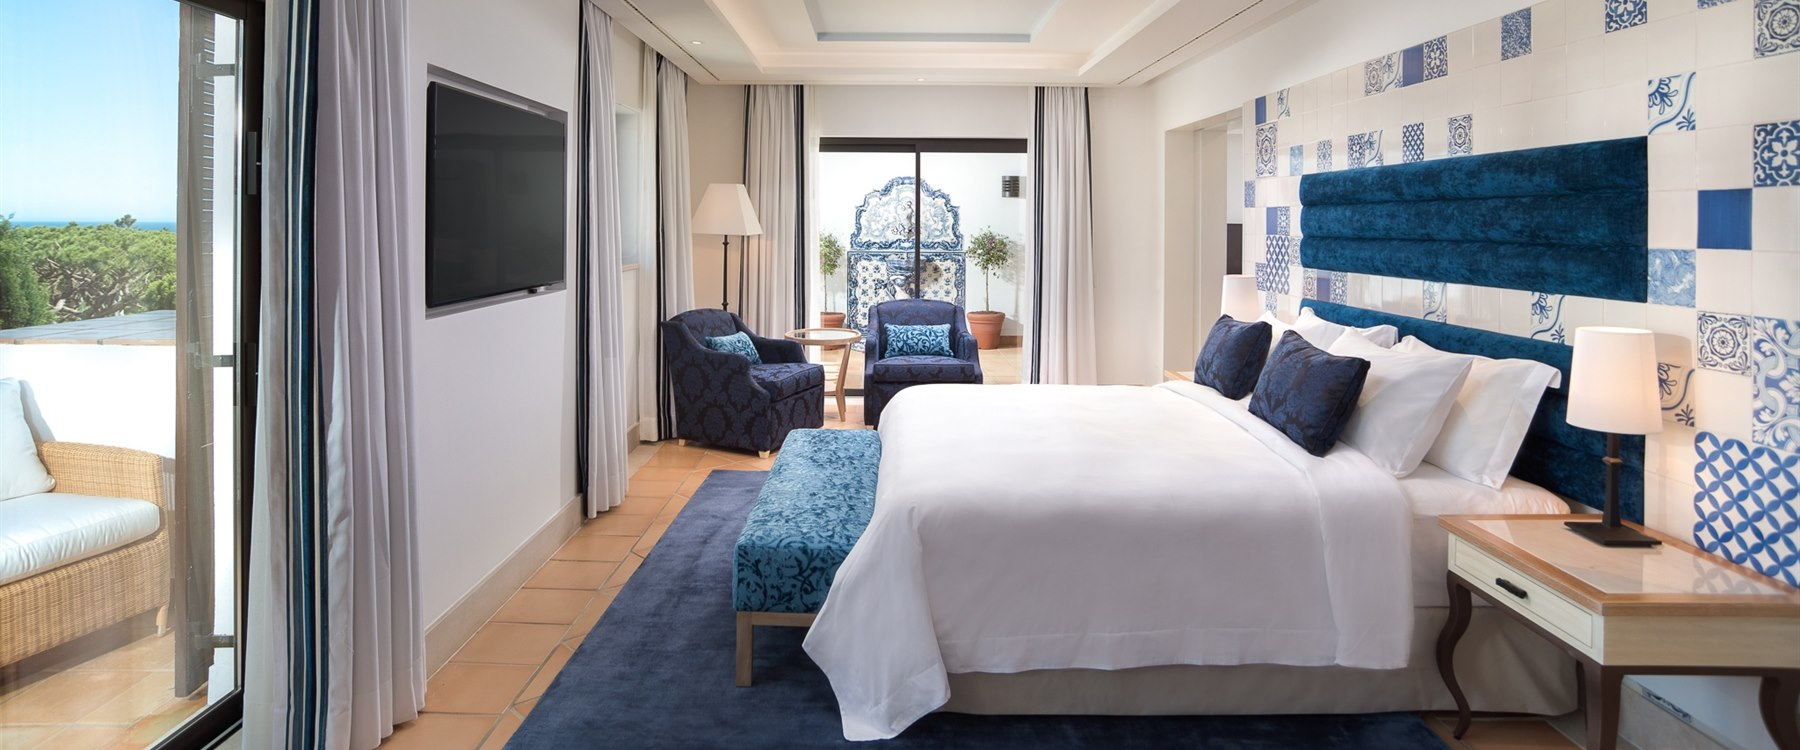 Bedroom at Pine Cliffs - A Luxury Collection Resort, Portugal